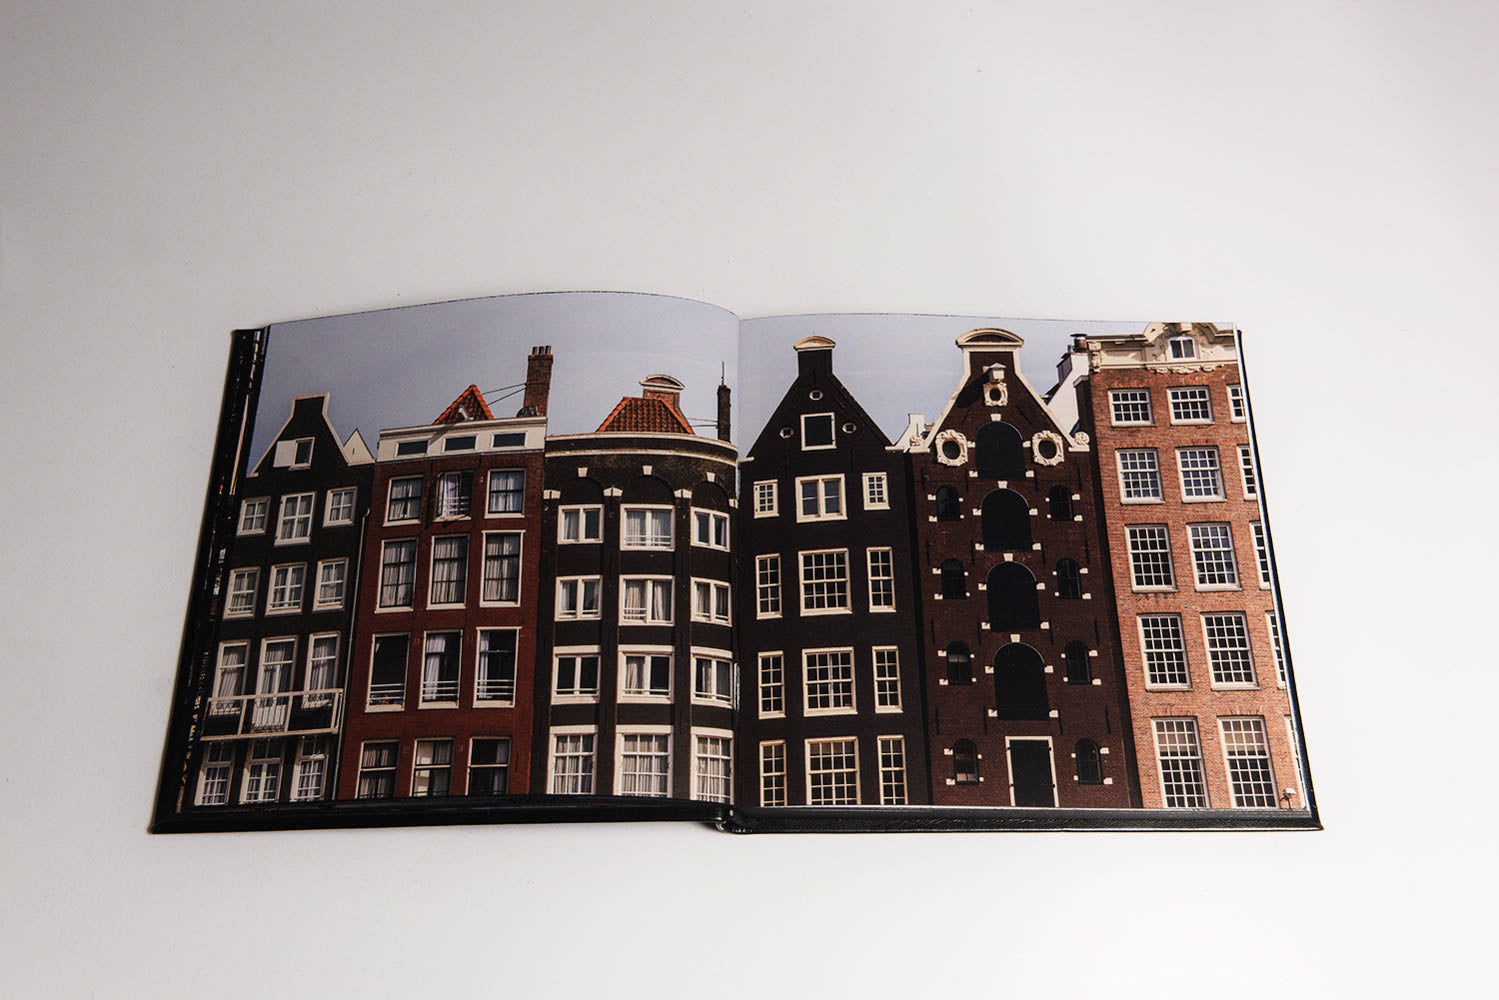 DEFINE FINE AMSTERDAM TRAVEL GUIDE